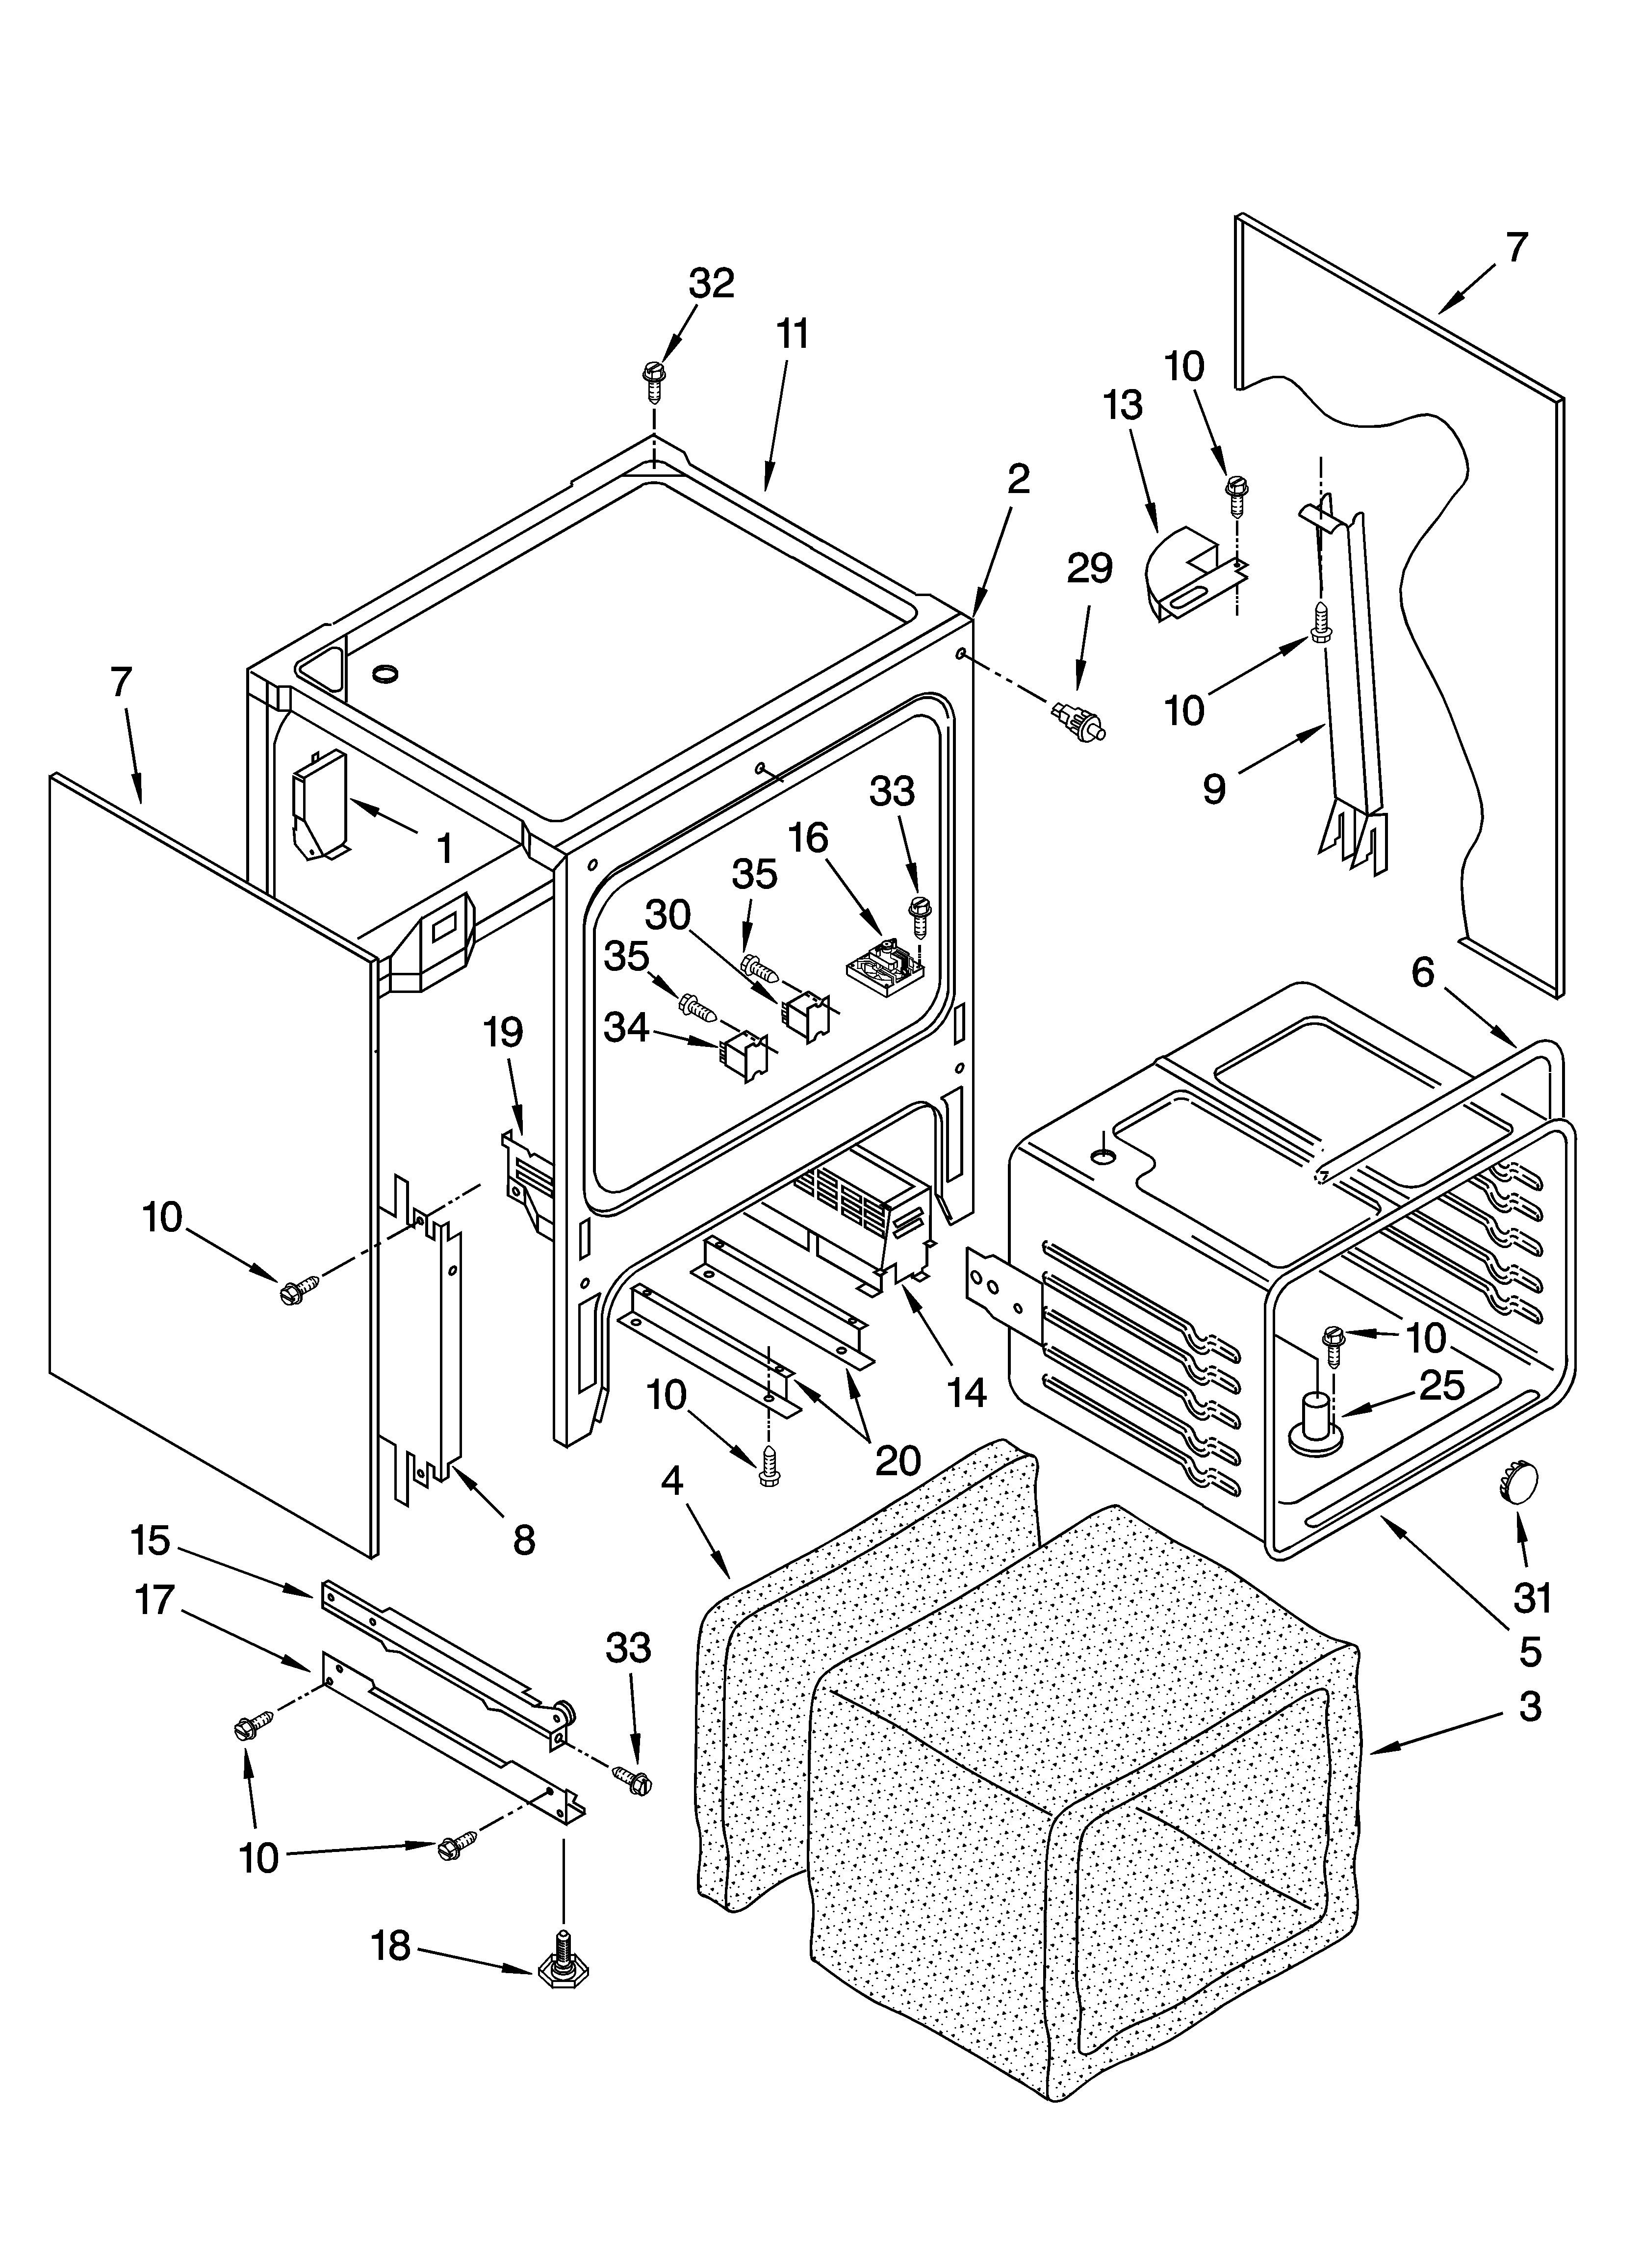 YKESC307HS6 Slide In Range Electric Oven chassis Parts diagram